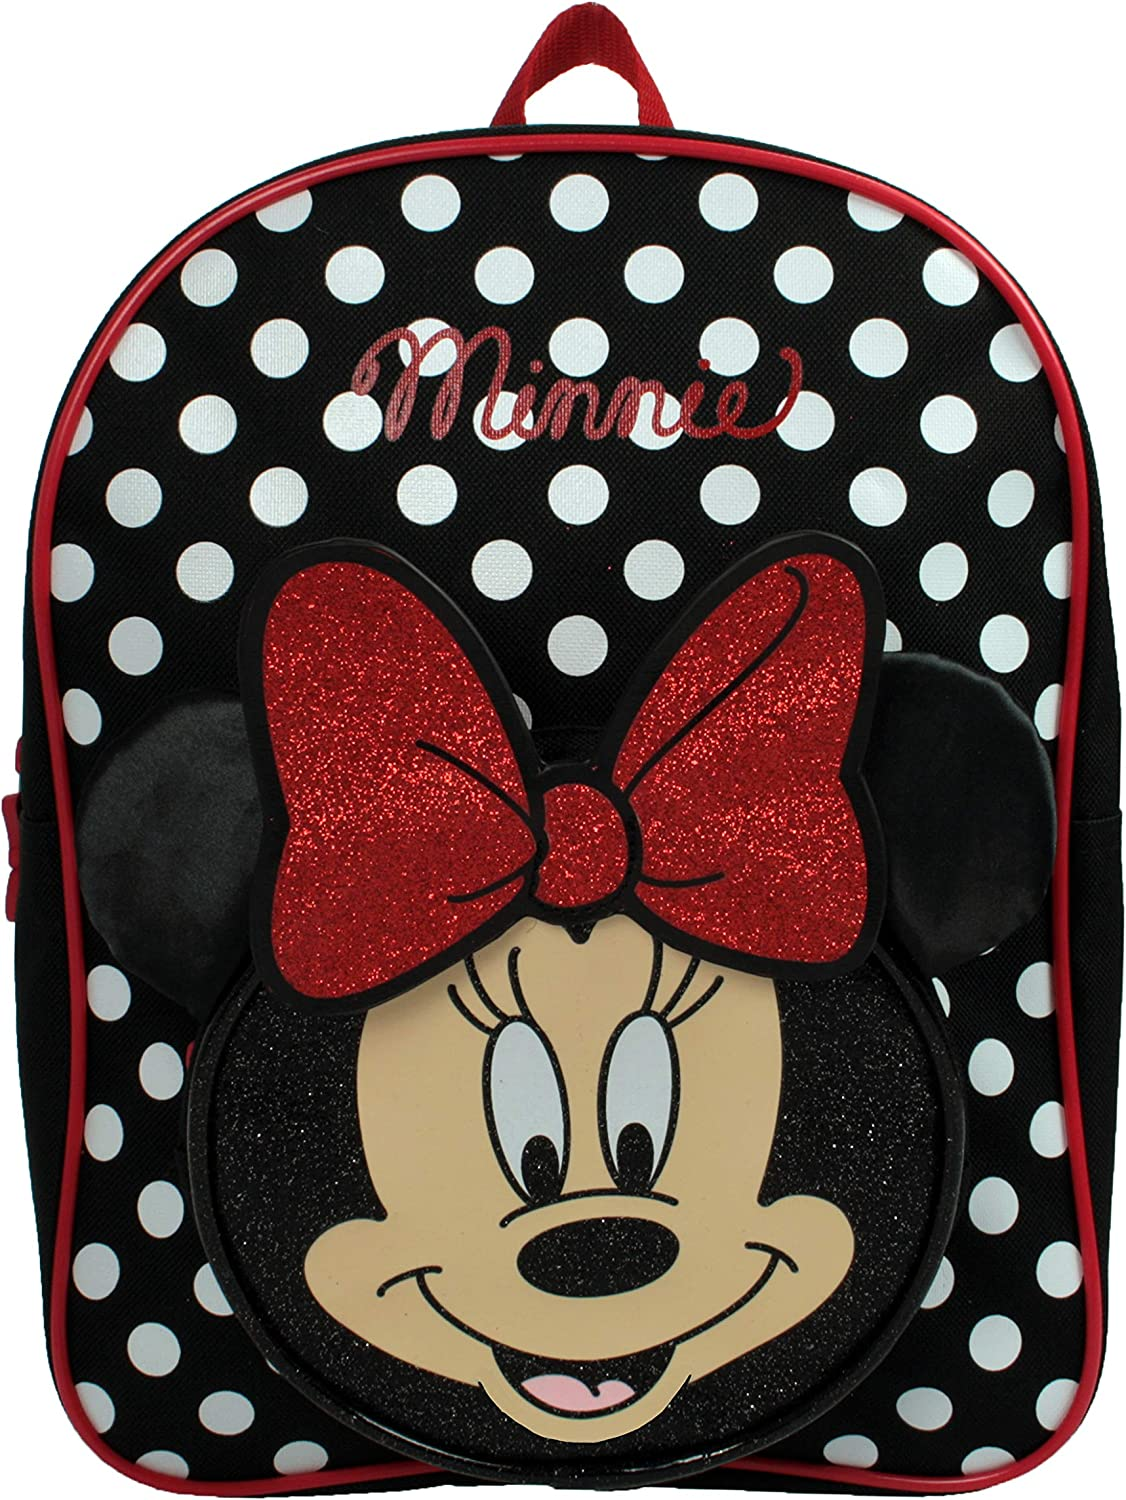 Disneys Minnie Mouse Arch Pocket Backpack